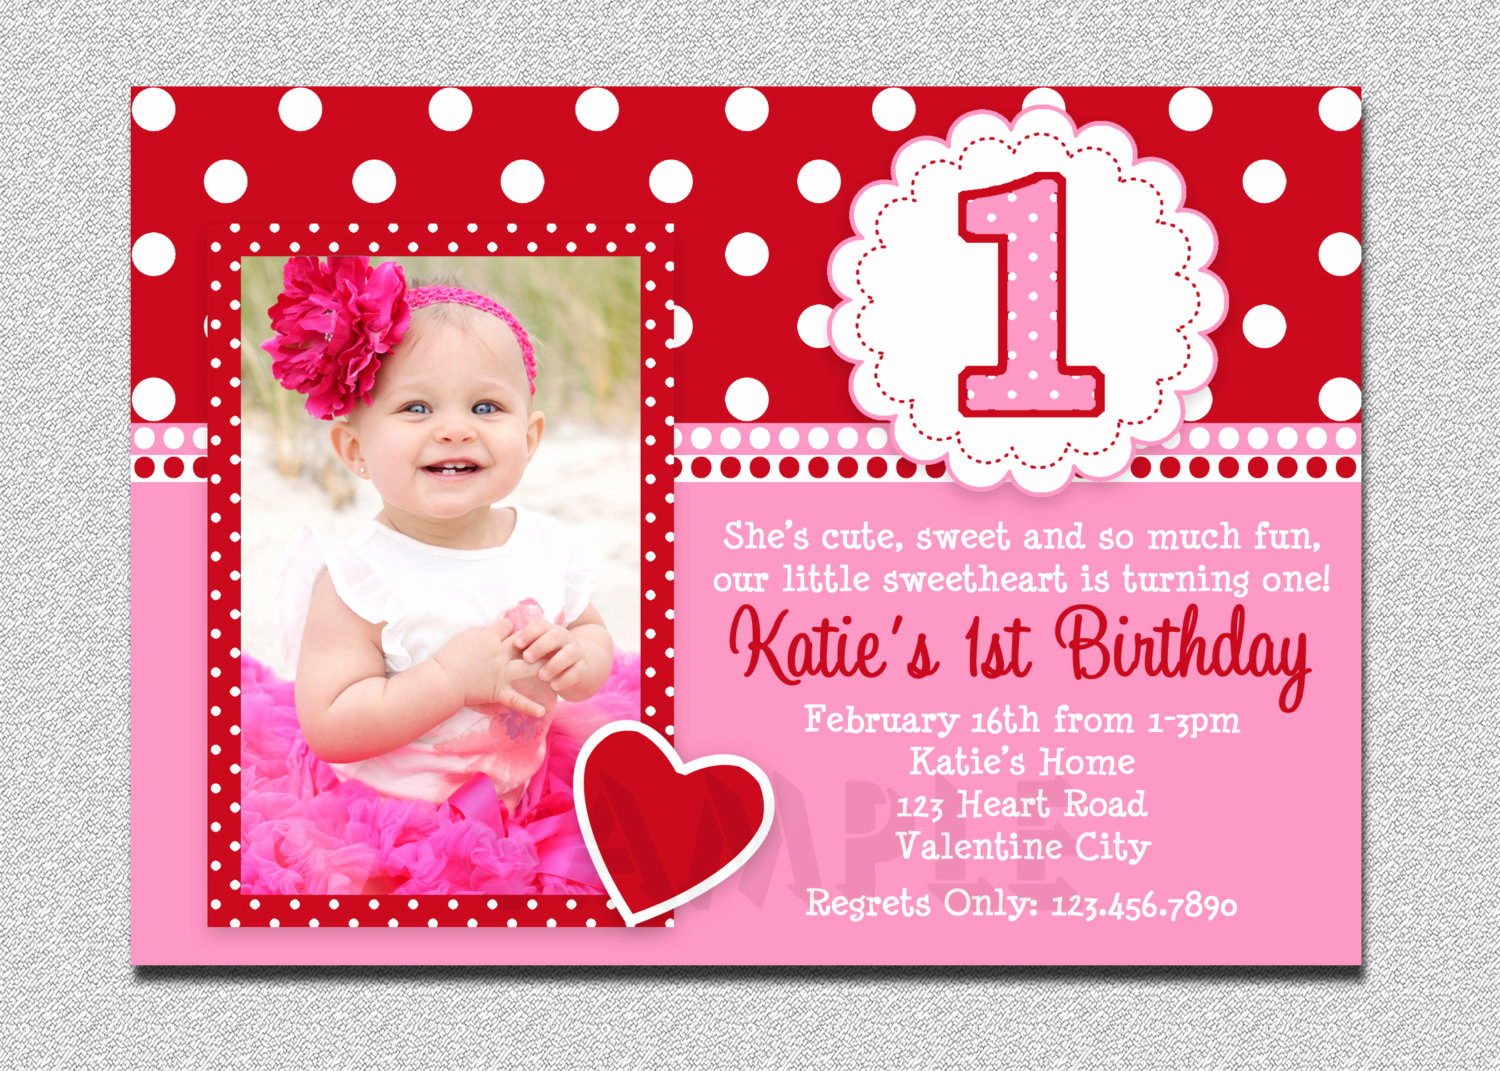 Birthday Invitation Card Sample Awesome Free Printable 1st Birthday Invitations Girl – Free